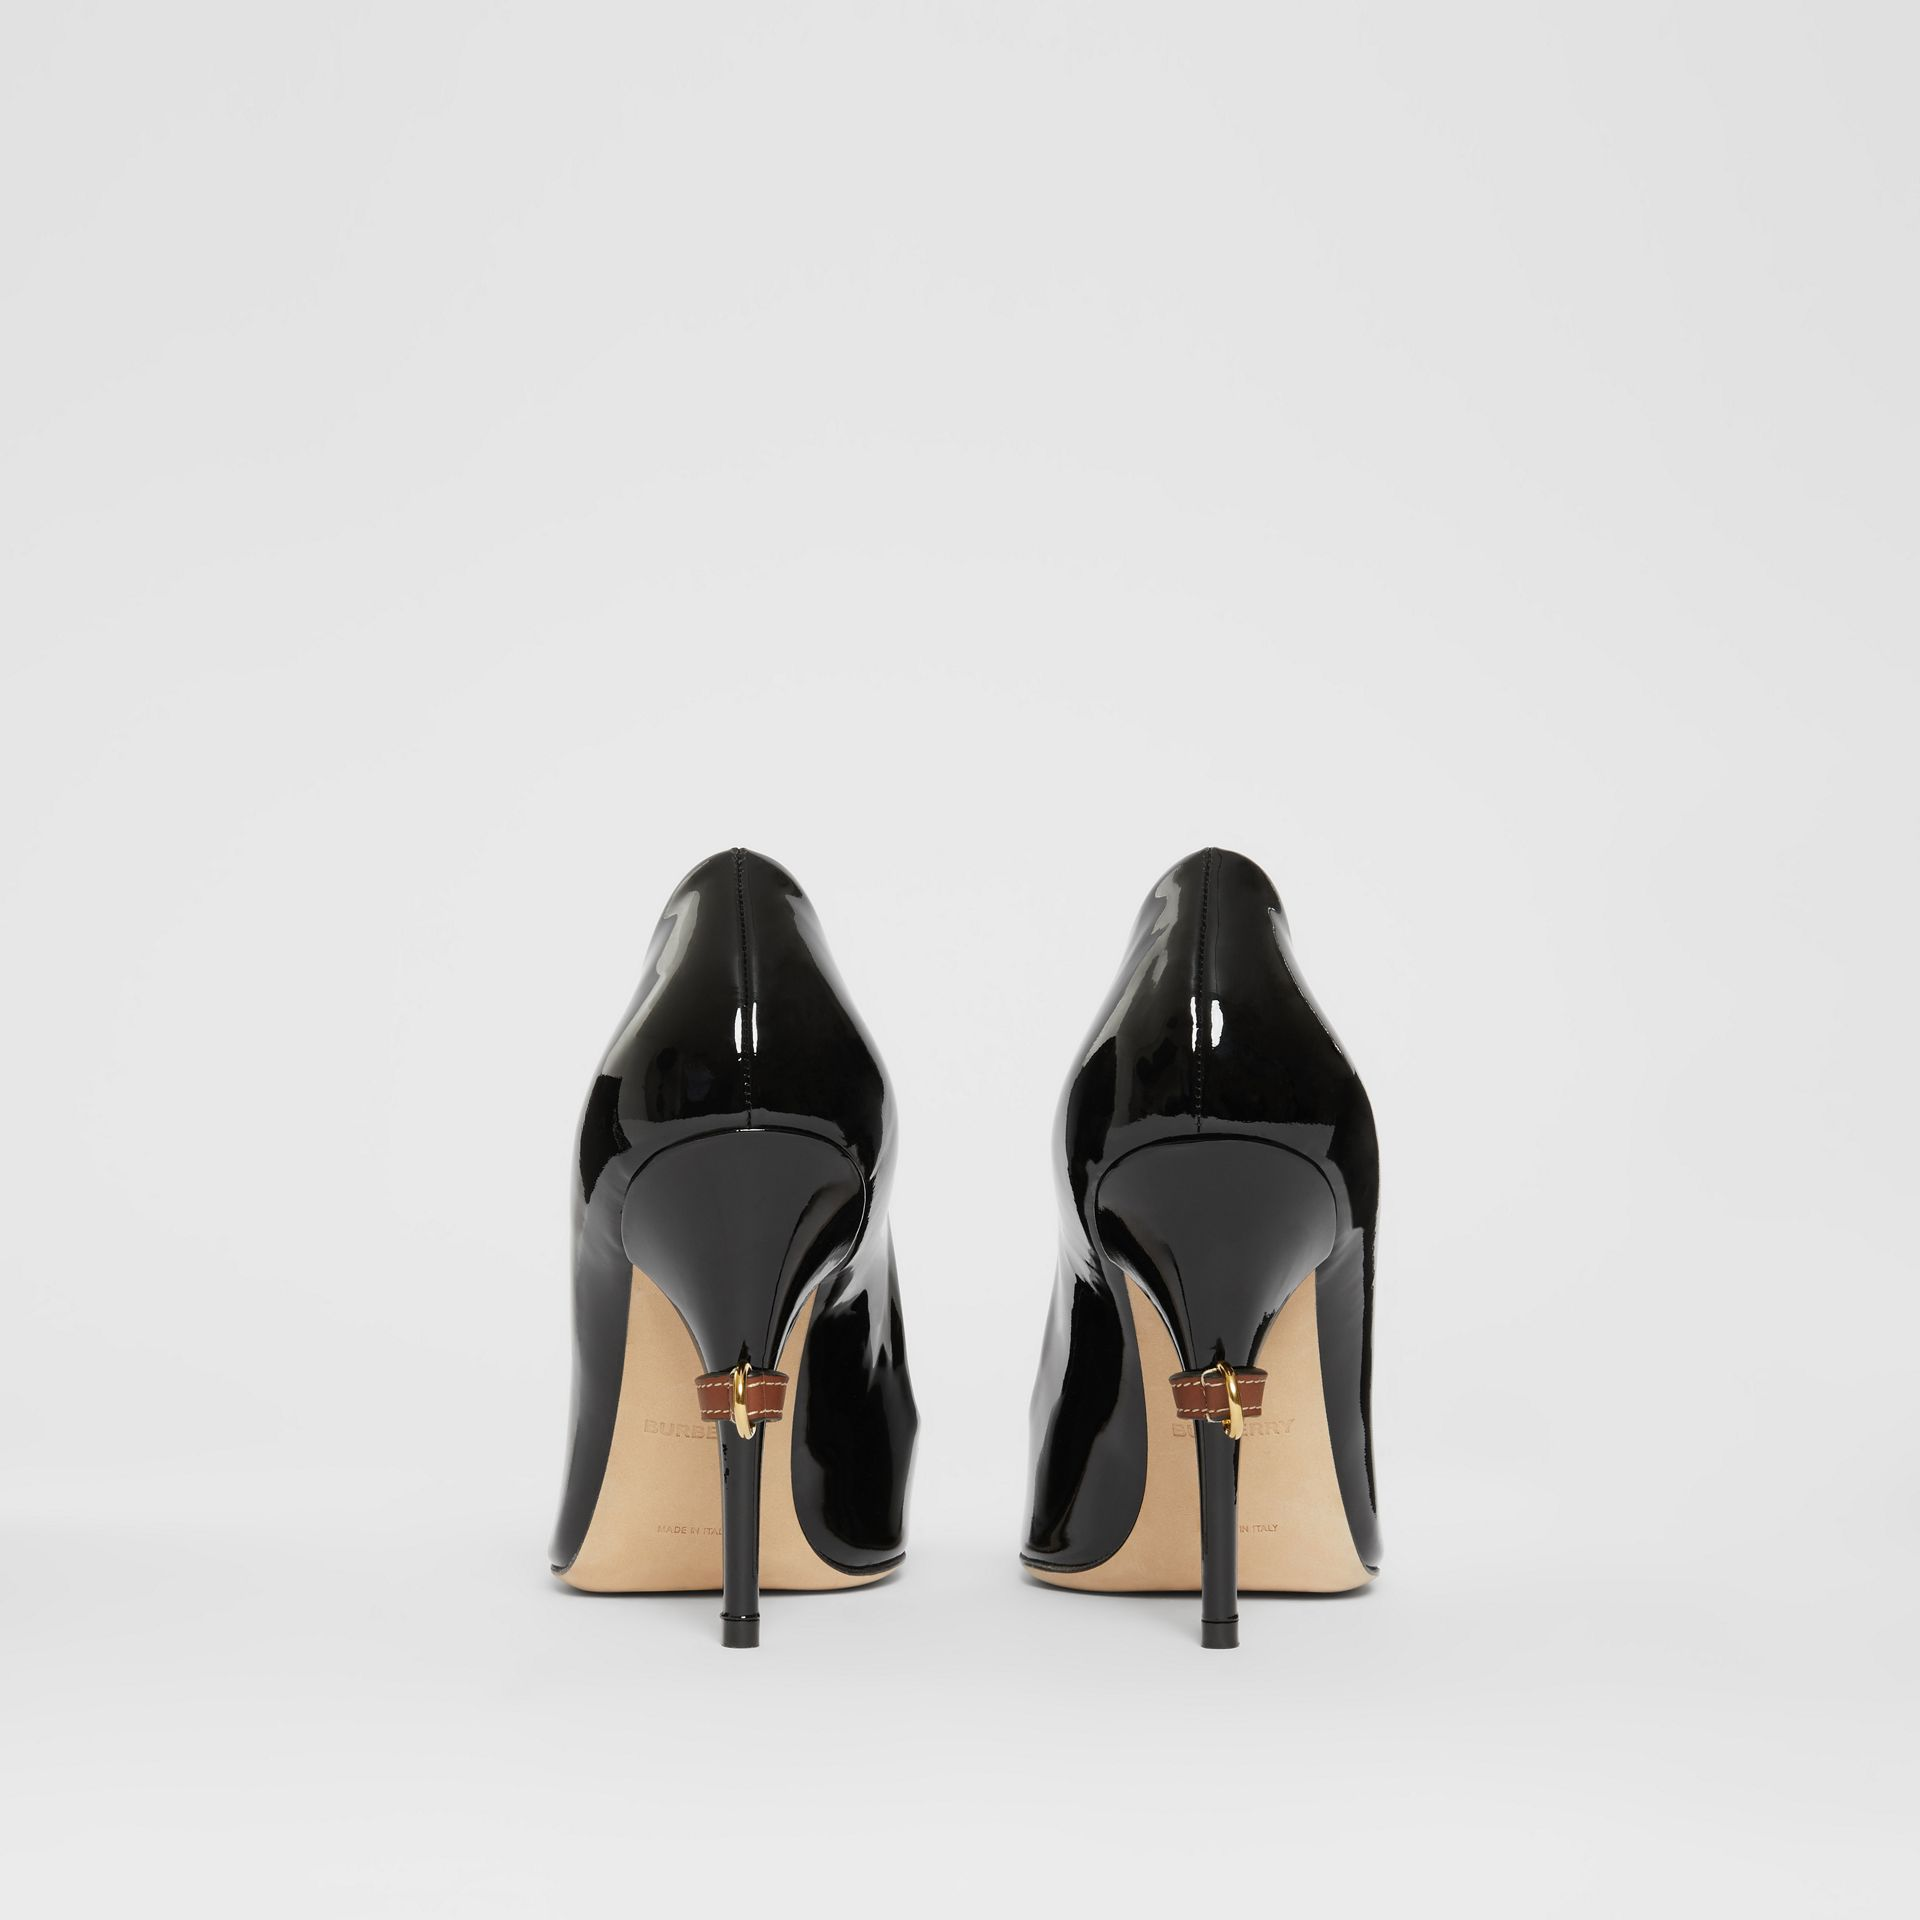 D-ring Detail Patent Leather Square-toe Pumps in Black - Women | Burberry - gallery image 4